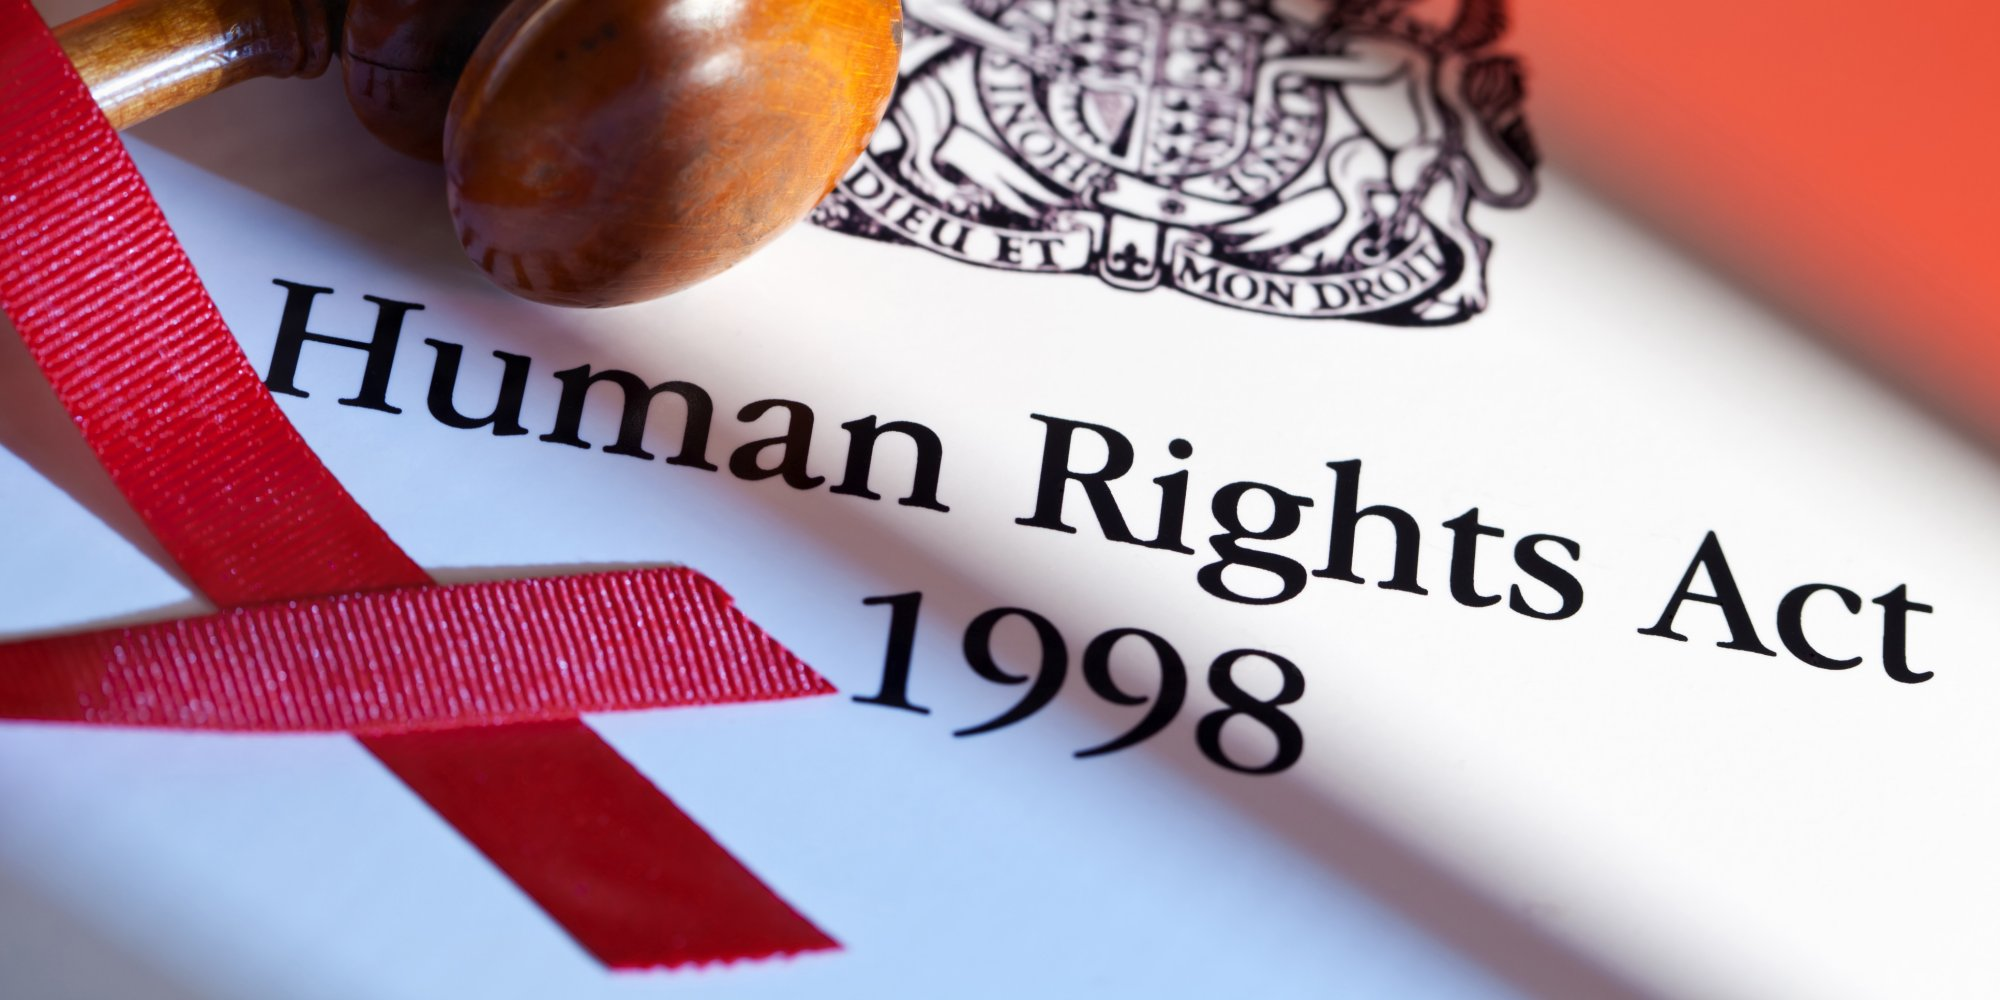 human acts The human rights act is a uk law passed in 1998 it lets you defend your rights in uk courts and compels public organisations – including the government, police and local councils – to treat everyone equally, with fairness, dignity and respect.